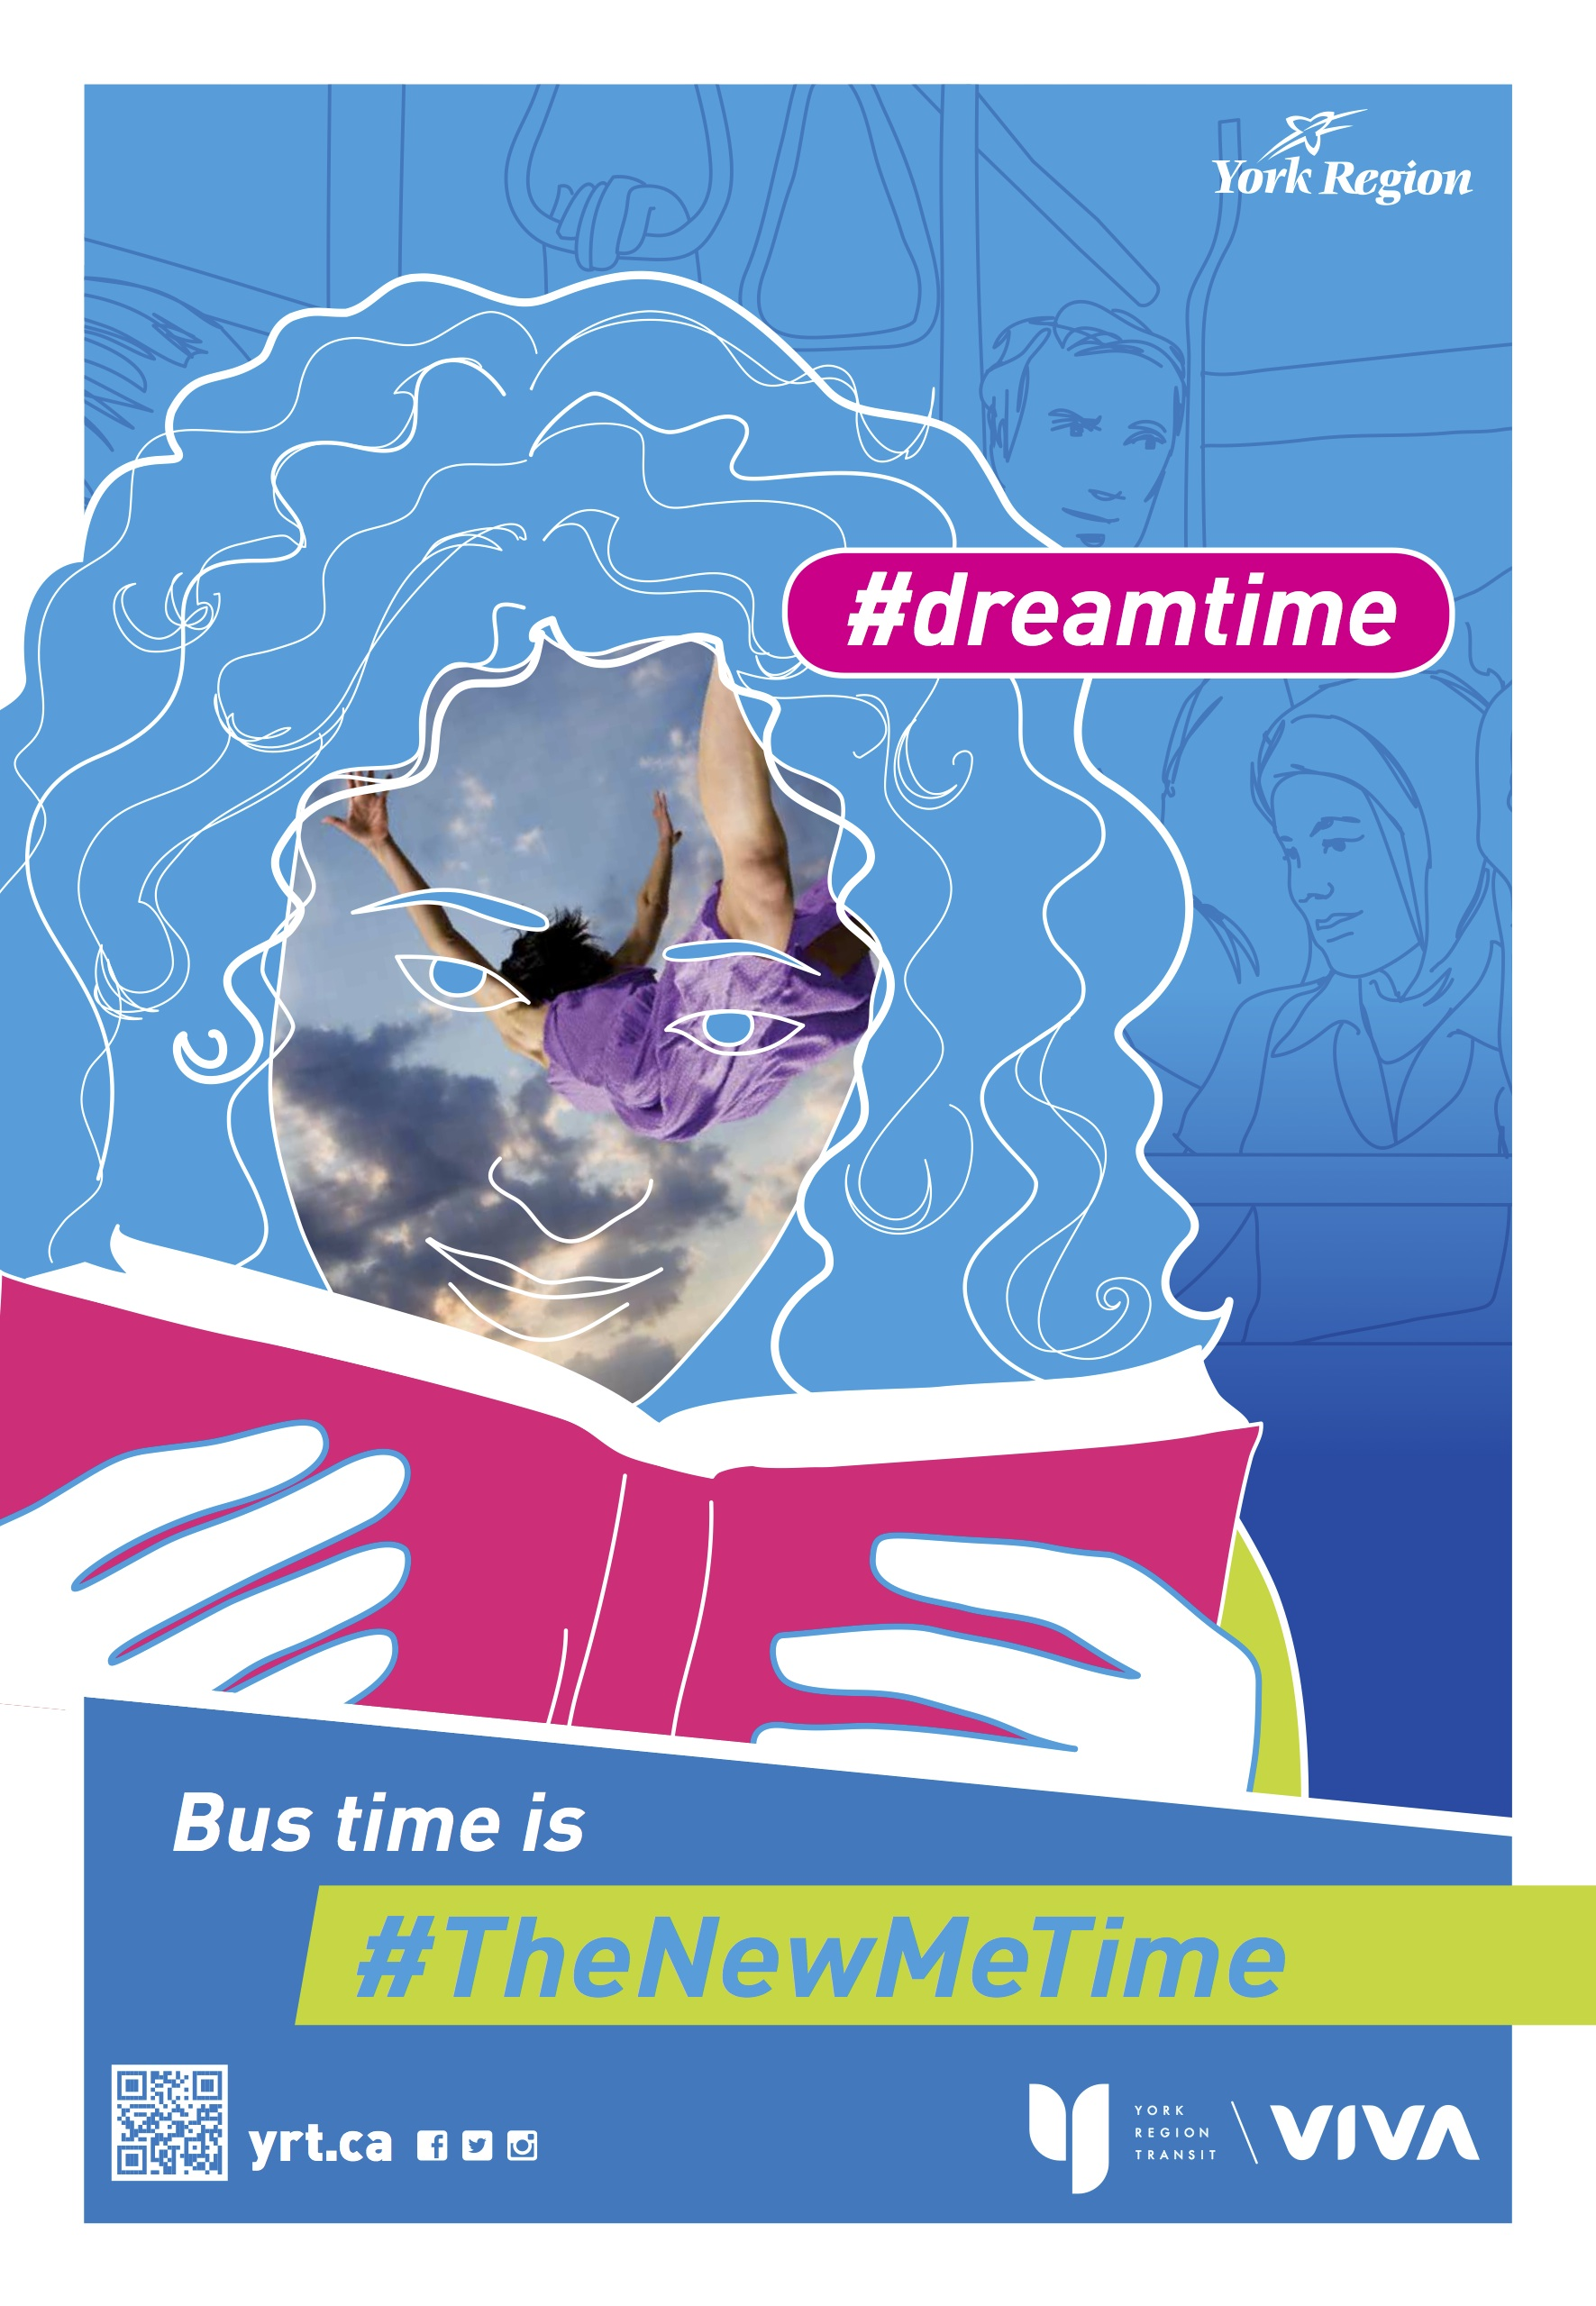 York Region Transit poster - dreamtime: Bus time is the new me time